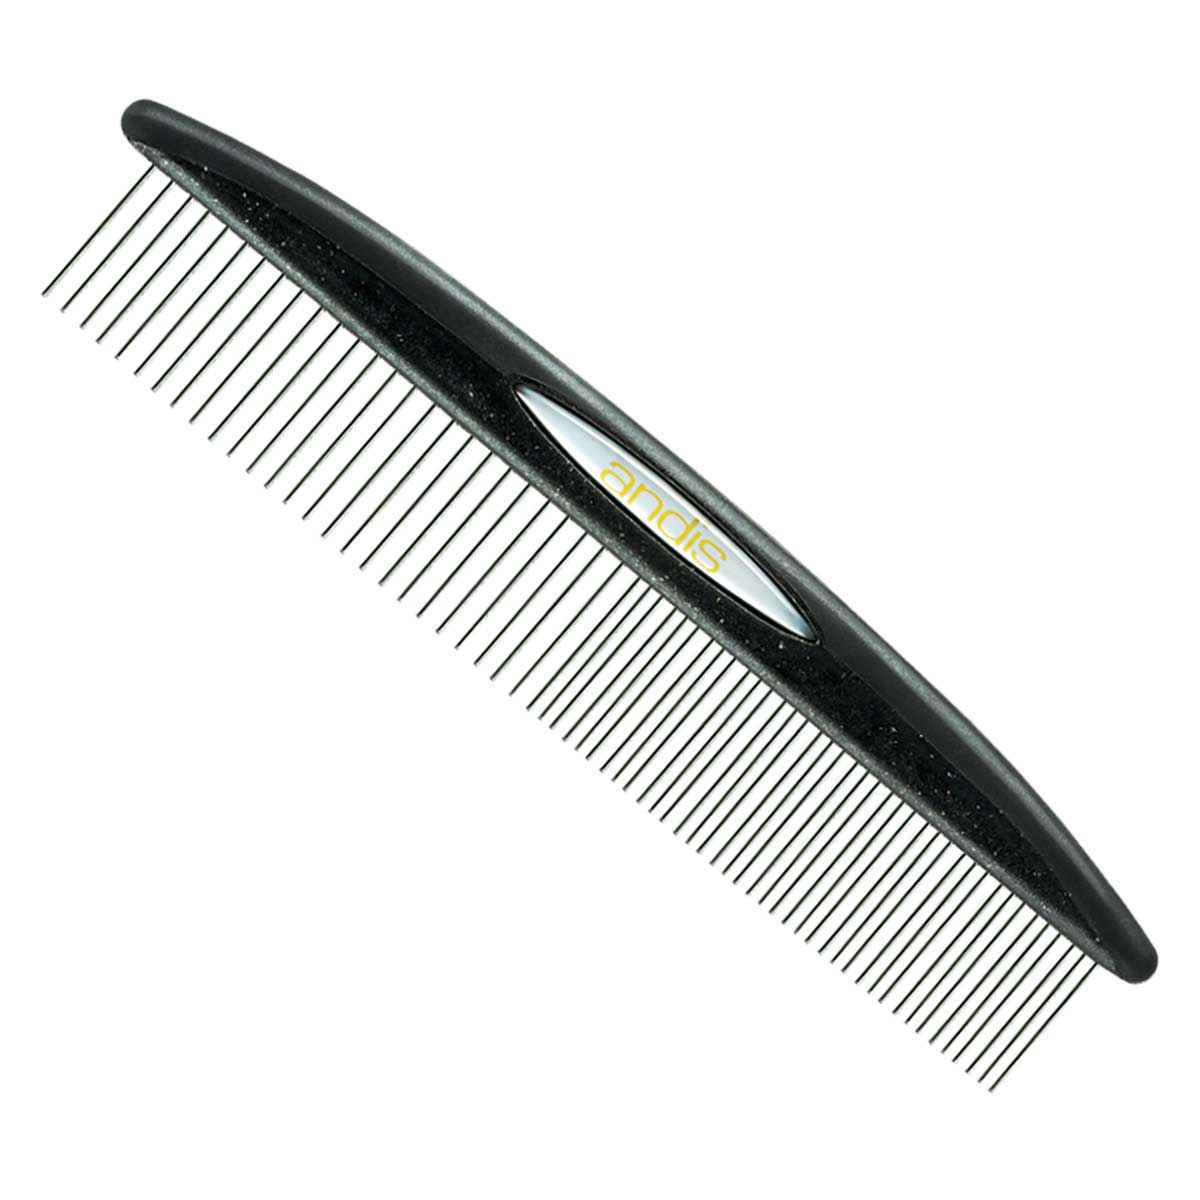 Black Andis 7.5 inch Premium Pet Steel Comb